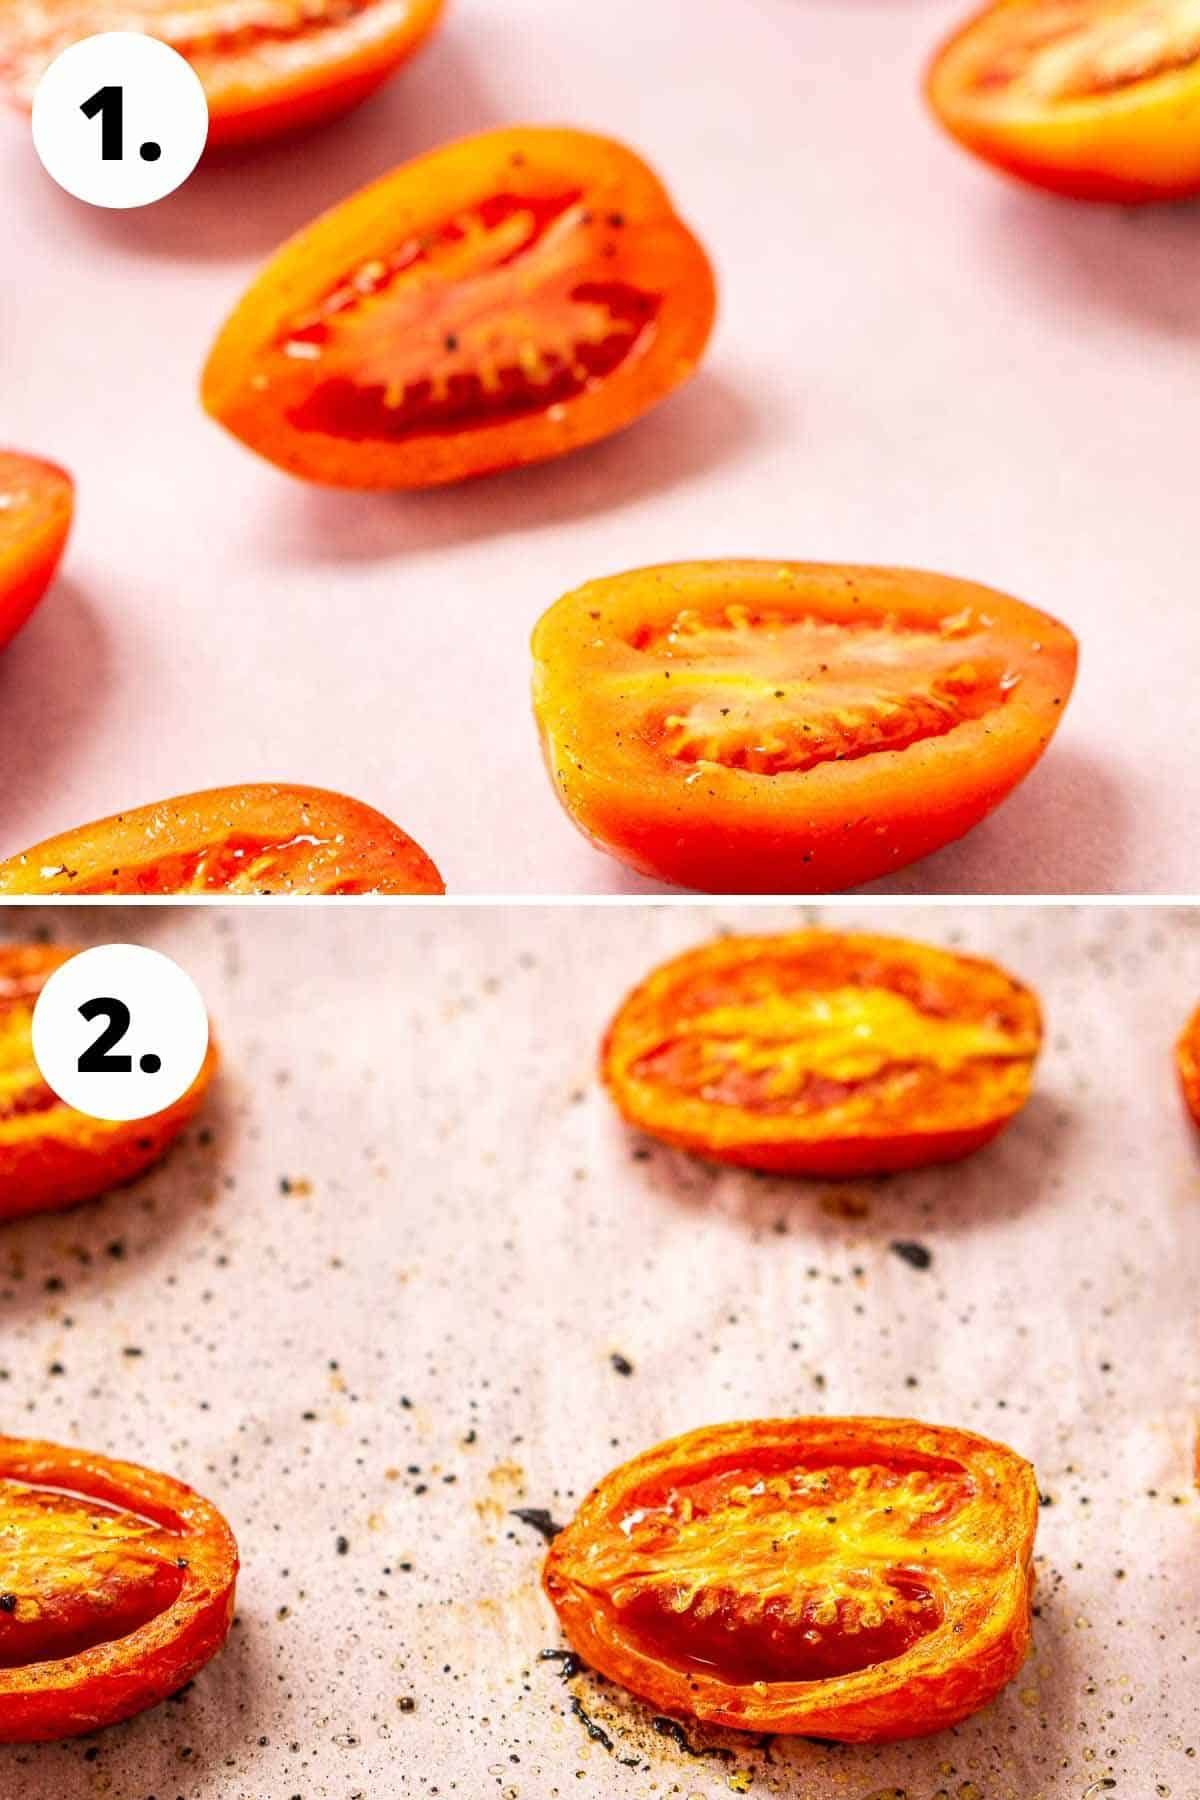 A collage showing the tomatoes on a sheet pan before roasting and then after roasting.